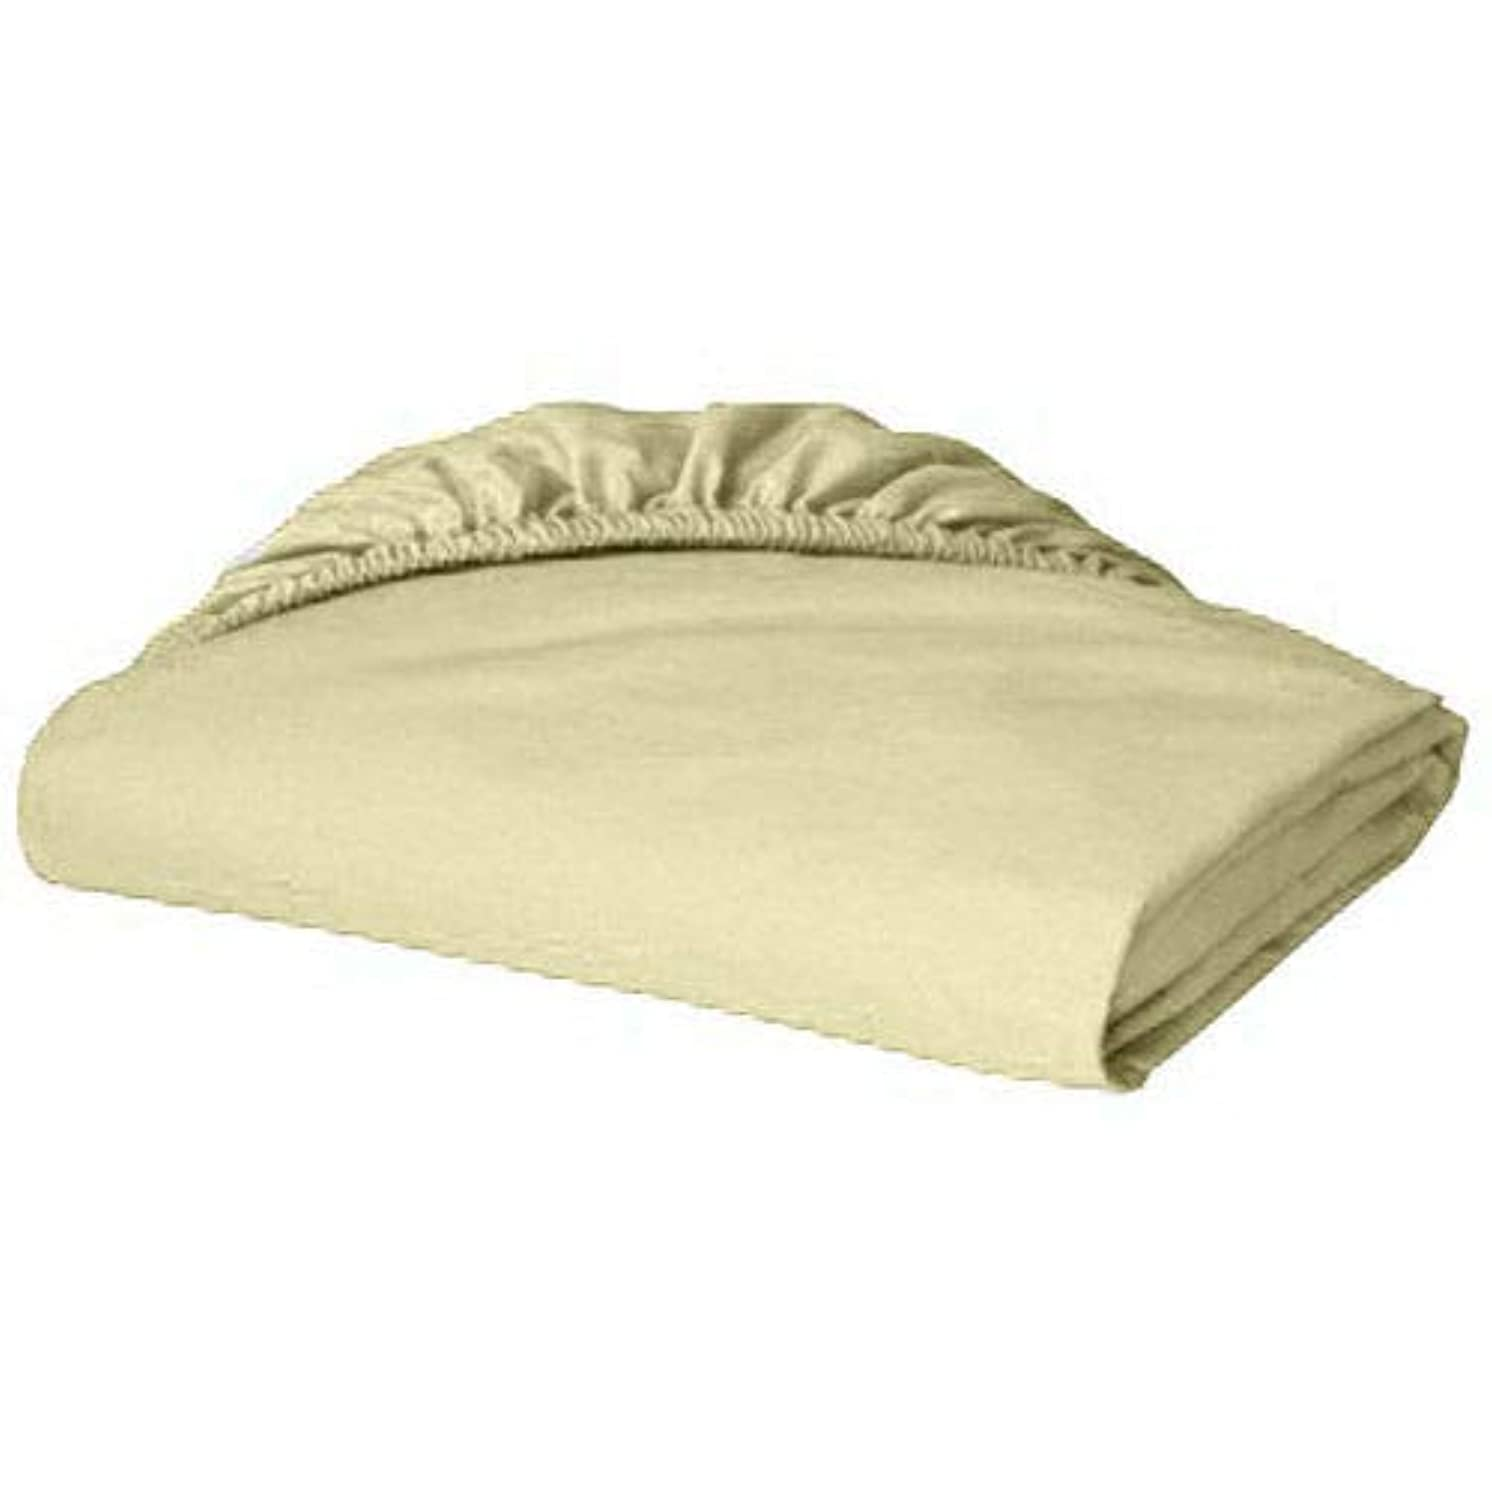 California Bedding Hotel Luxury 600 TC Long-Staple Egyptian Cotton Queen 60x80 Size 1 Fitted Sheet Only Fits Mattress 6